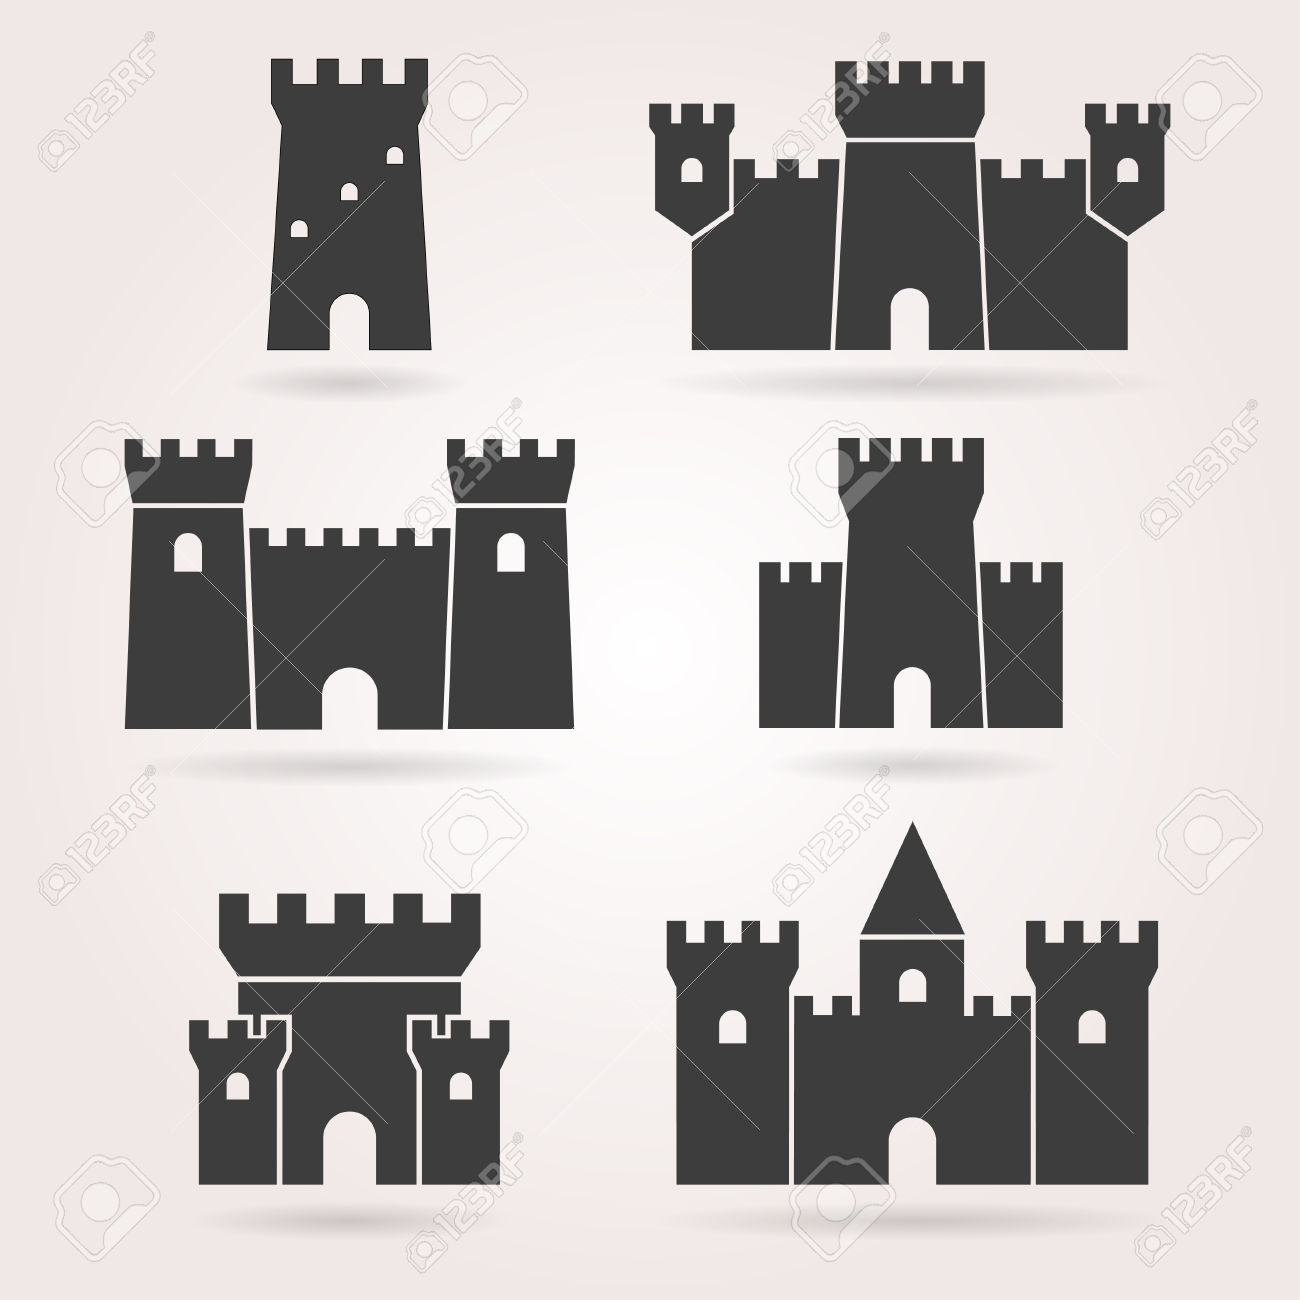 32,639 Castle Stock Vector Illustration And Royalty Free Castle.